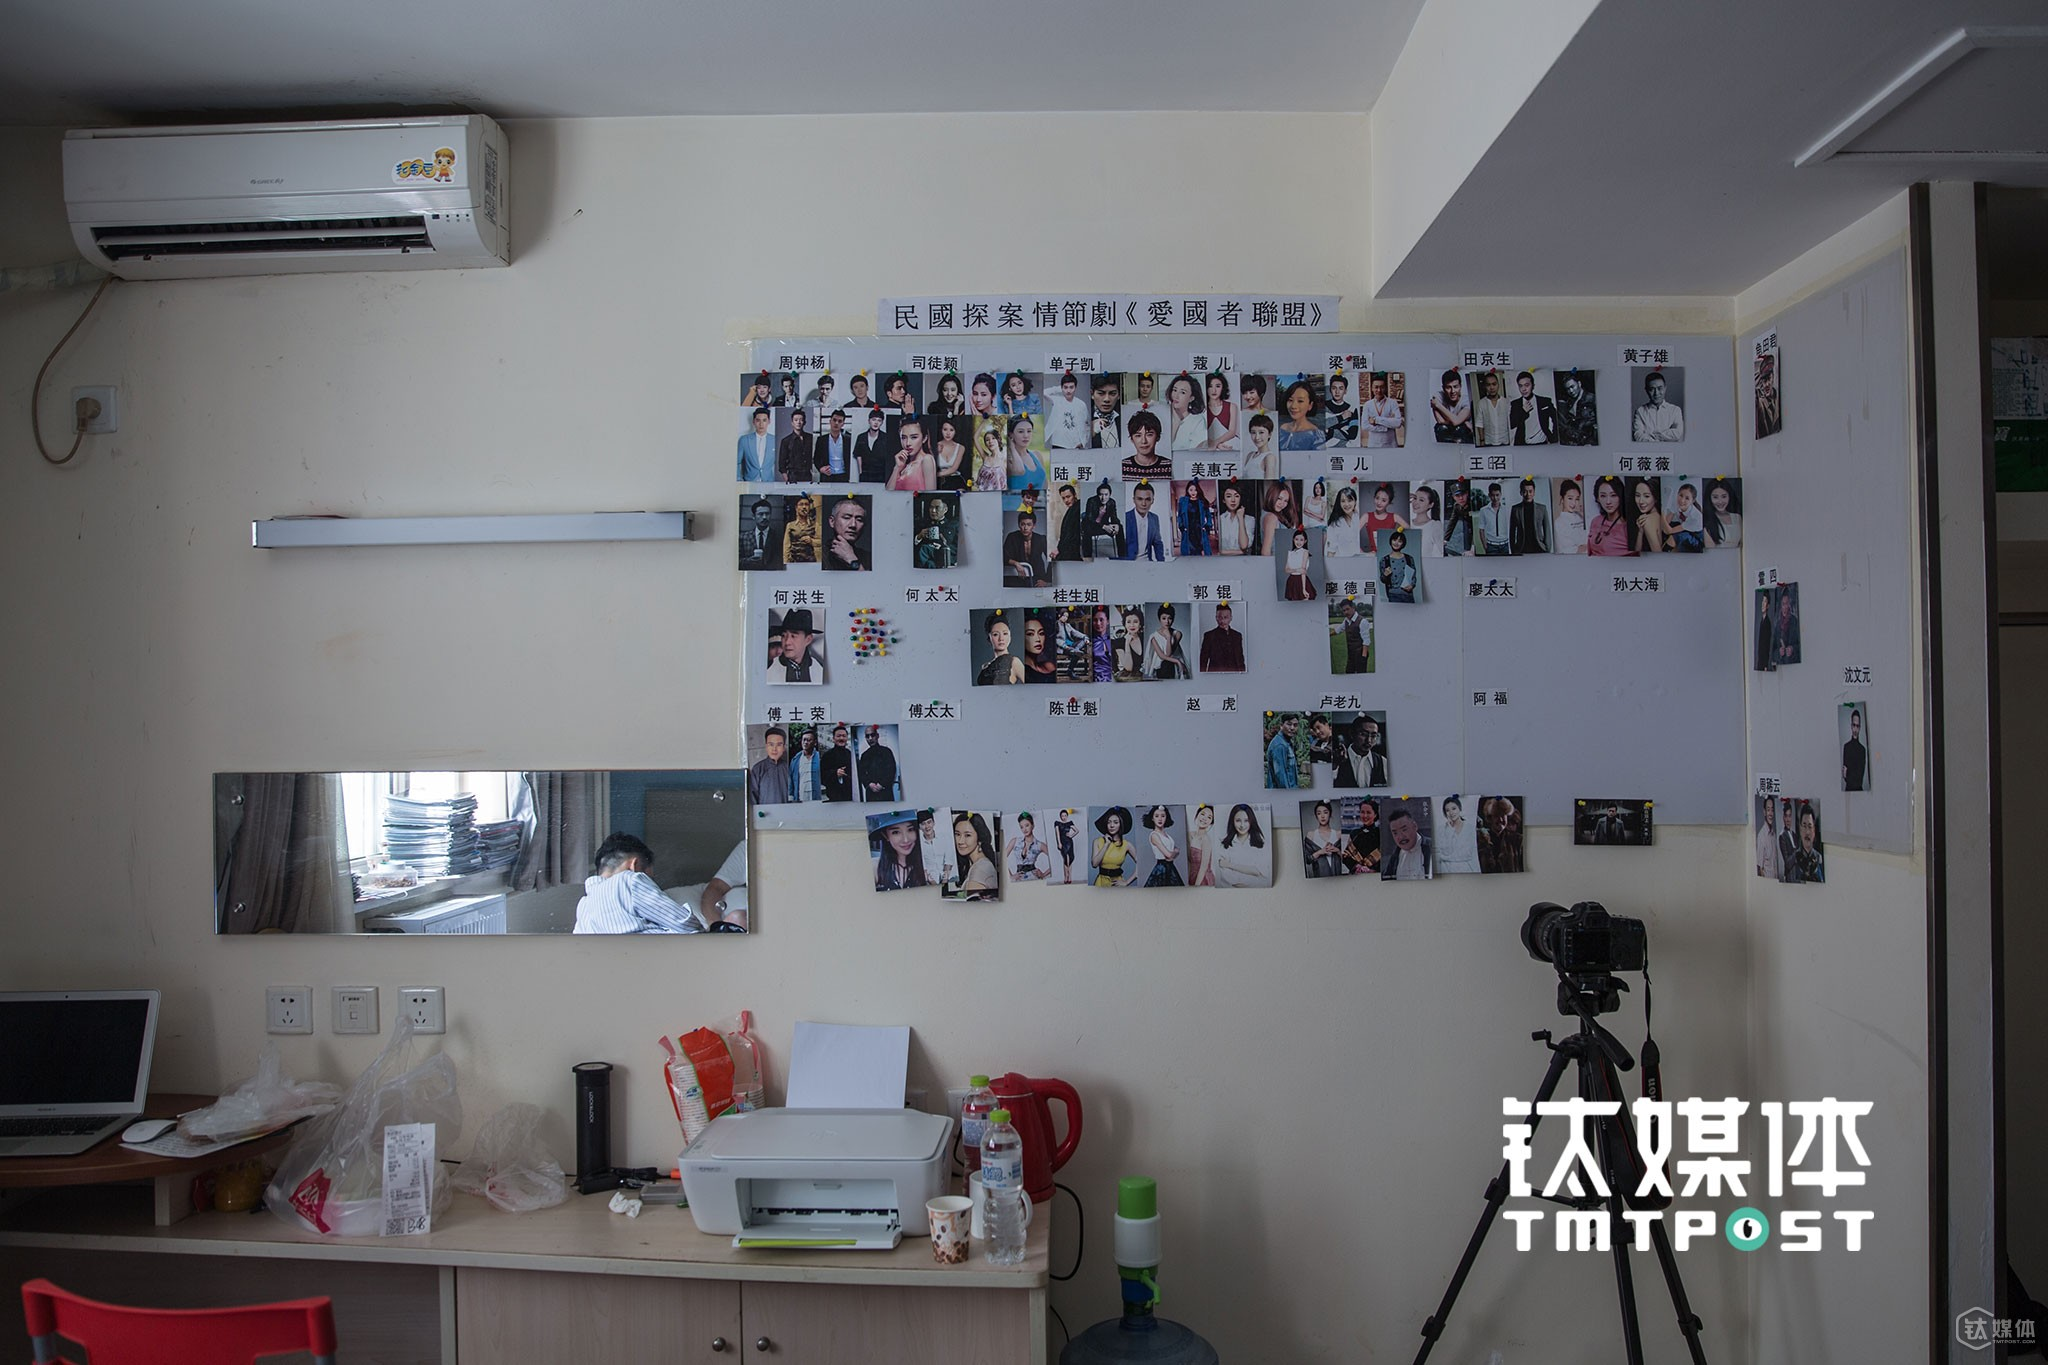 Besides internet big films, other crews would also get prepared in Piao Home Inn. The above picture is the preparation room of the crew for the film called The Patriot League. The wall was covered with photos of some candidates for the film.